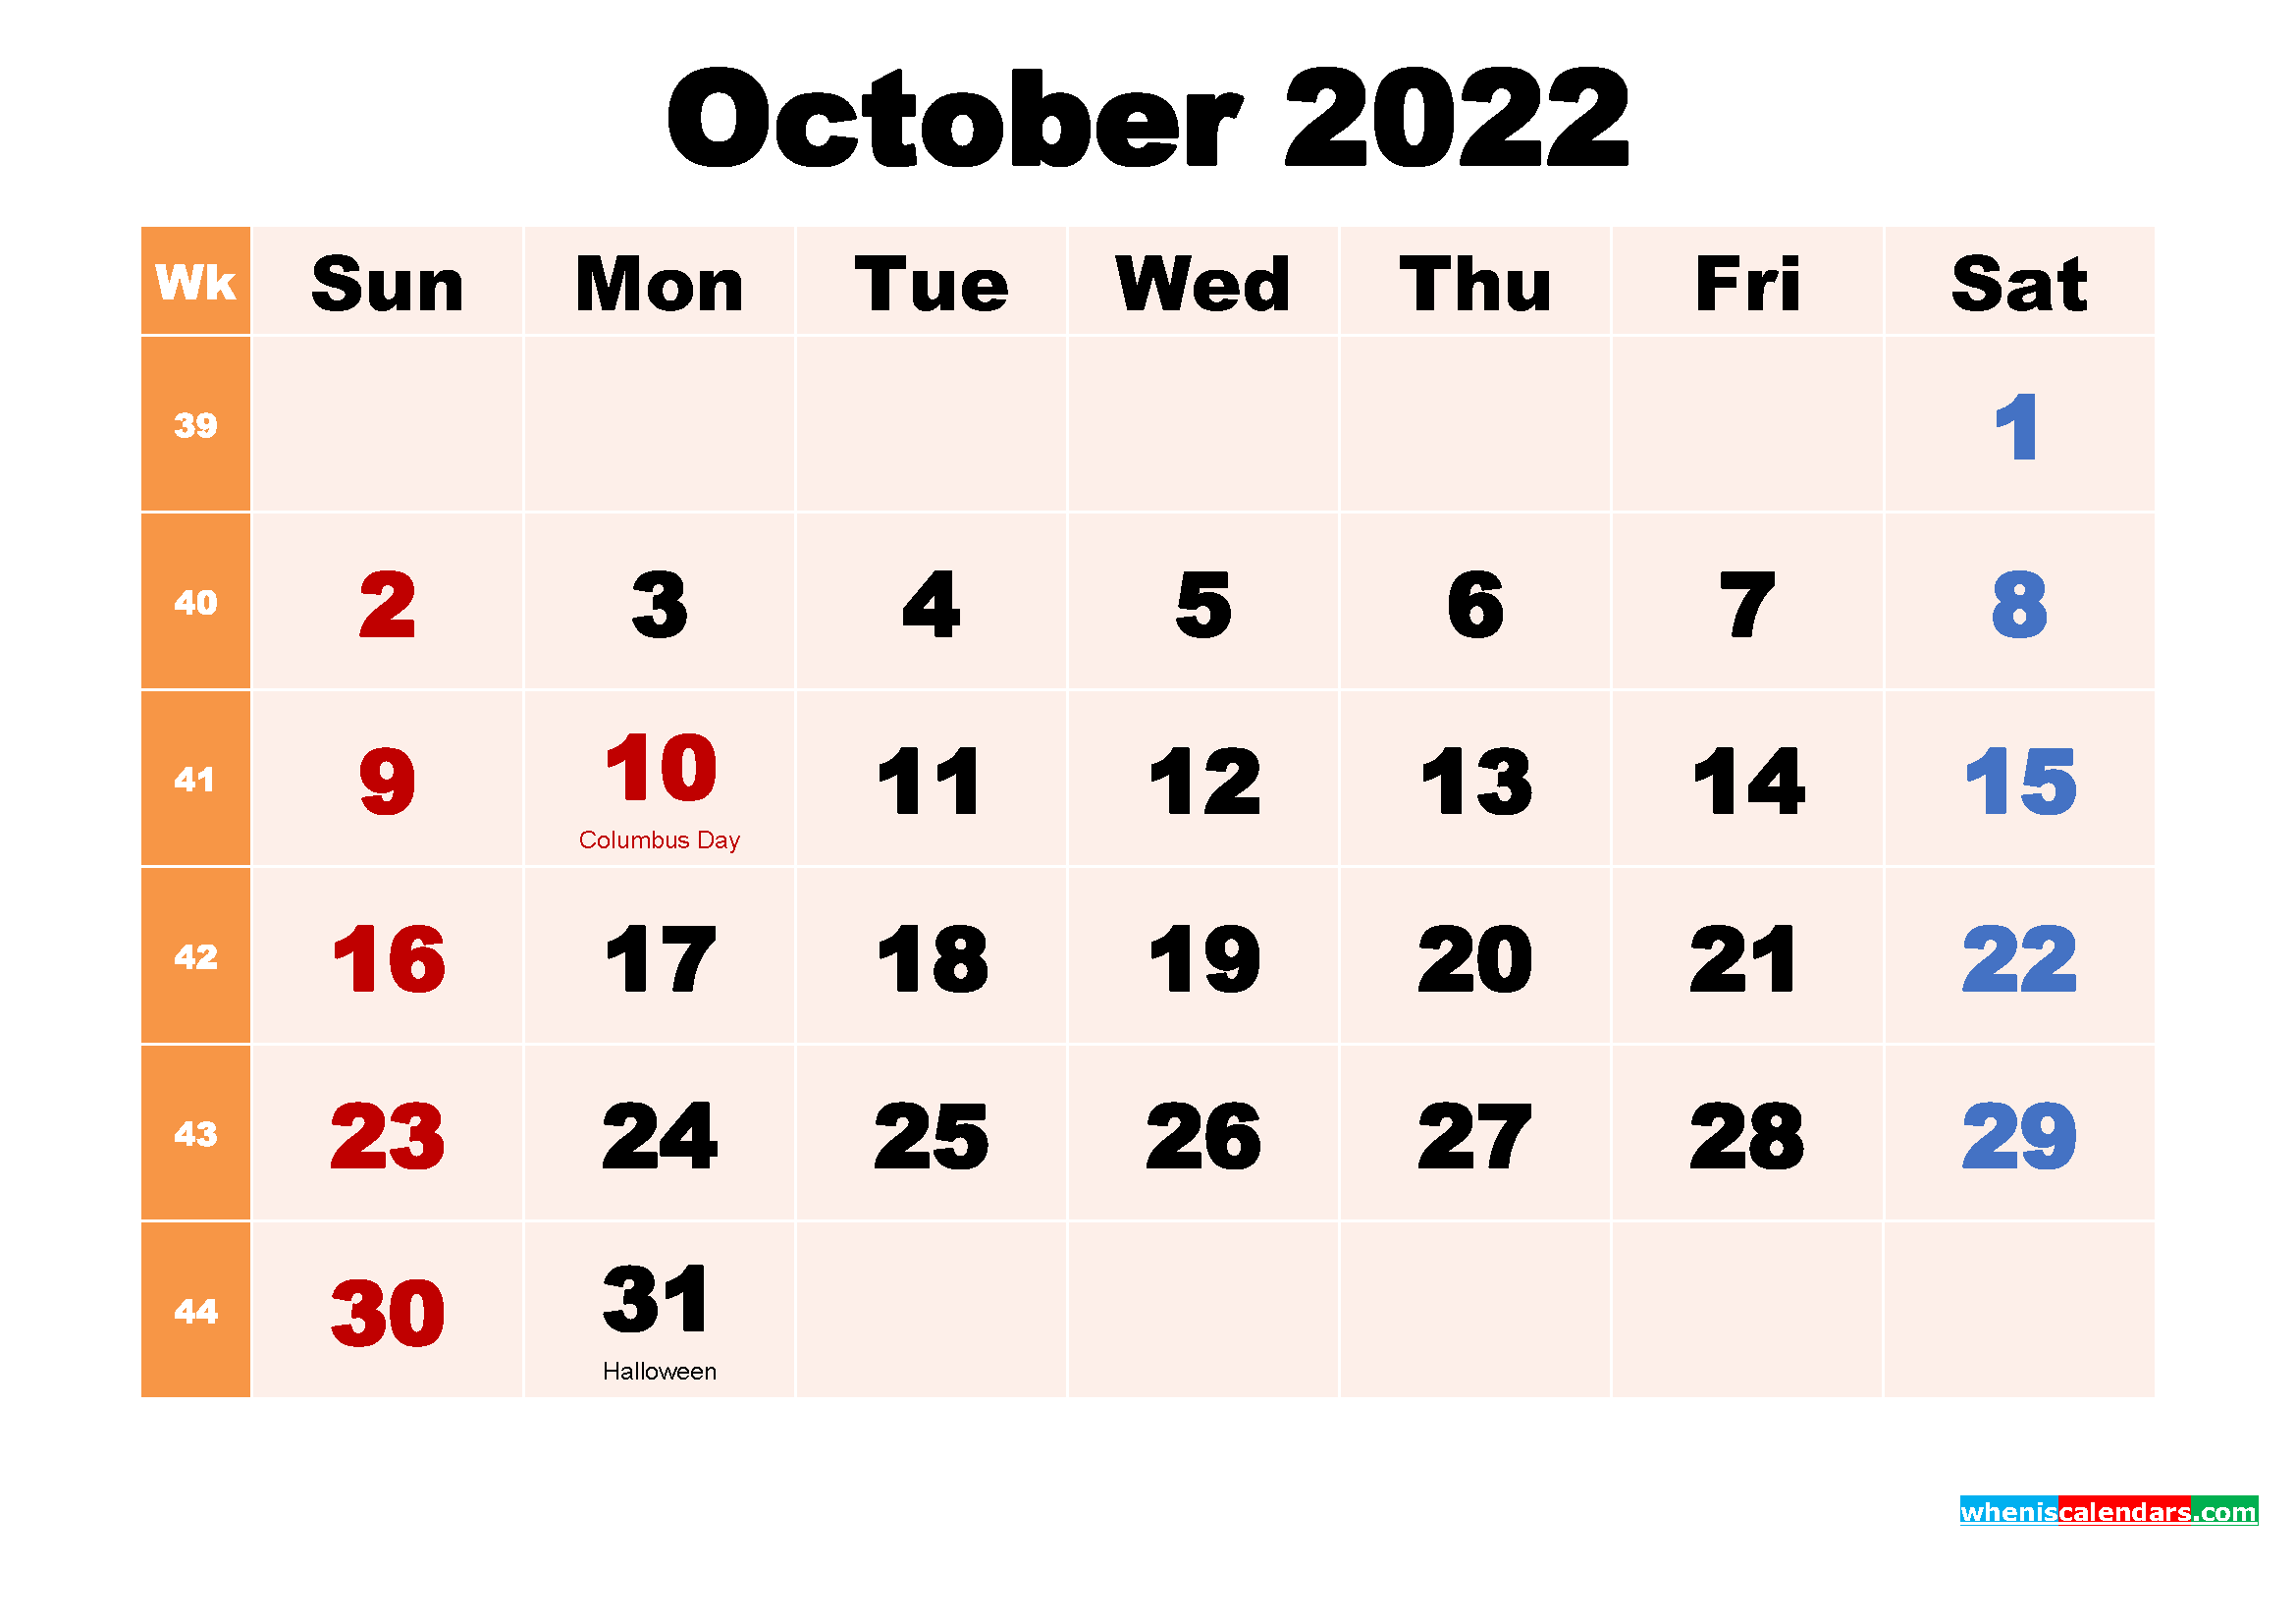 October 2022 Desktop Calendar with Holidays